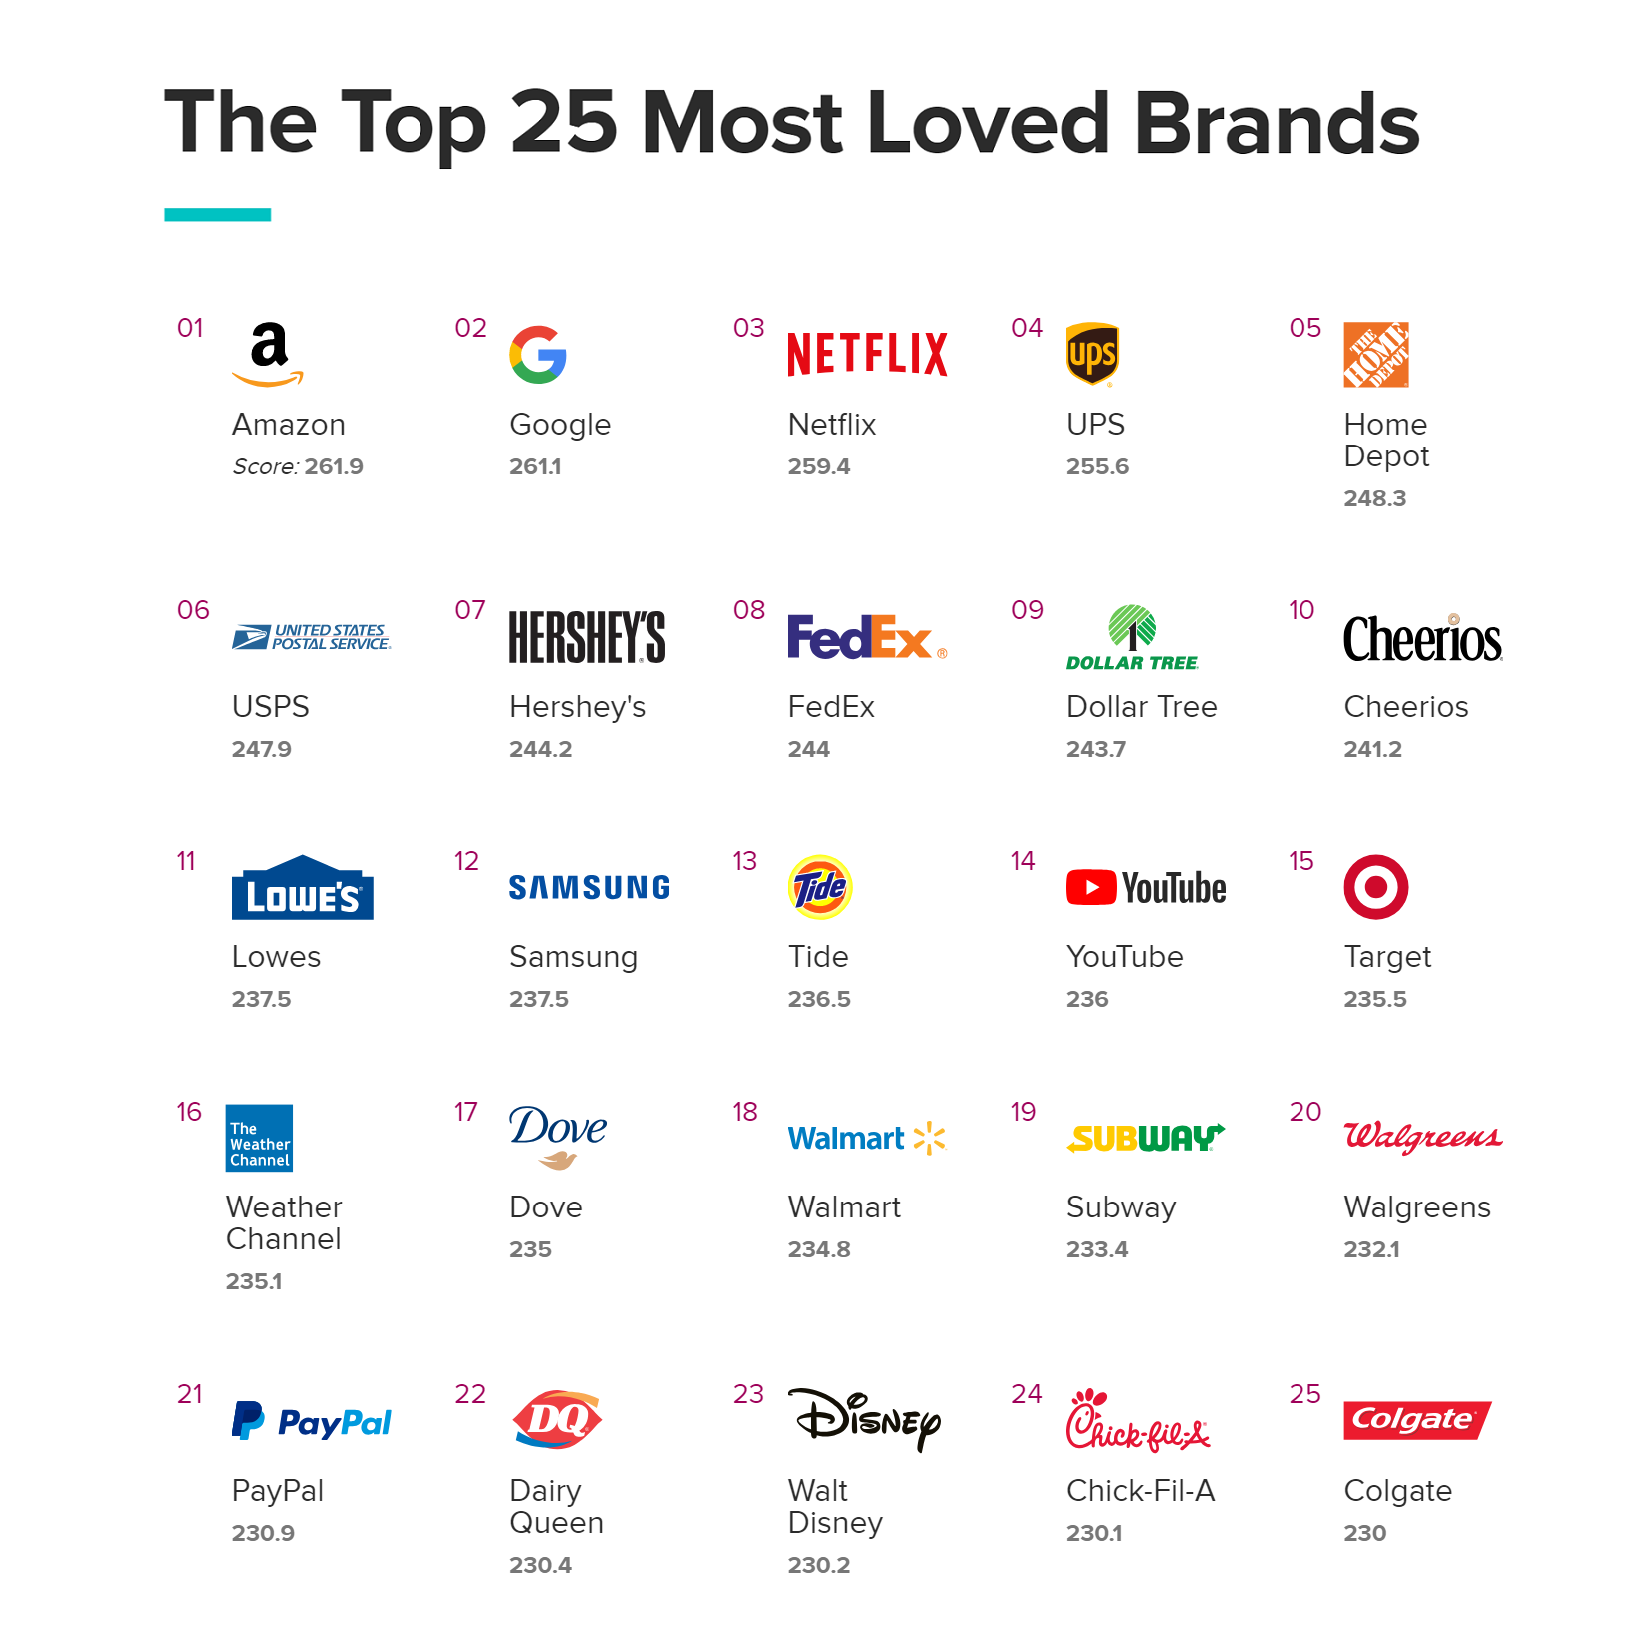 These Are the Most Loved Brands of 2019